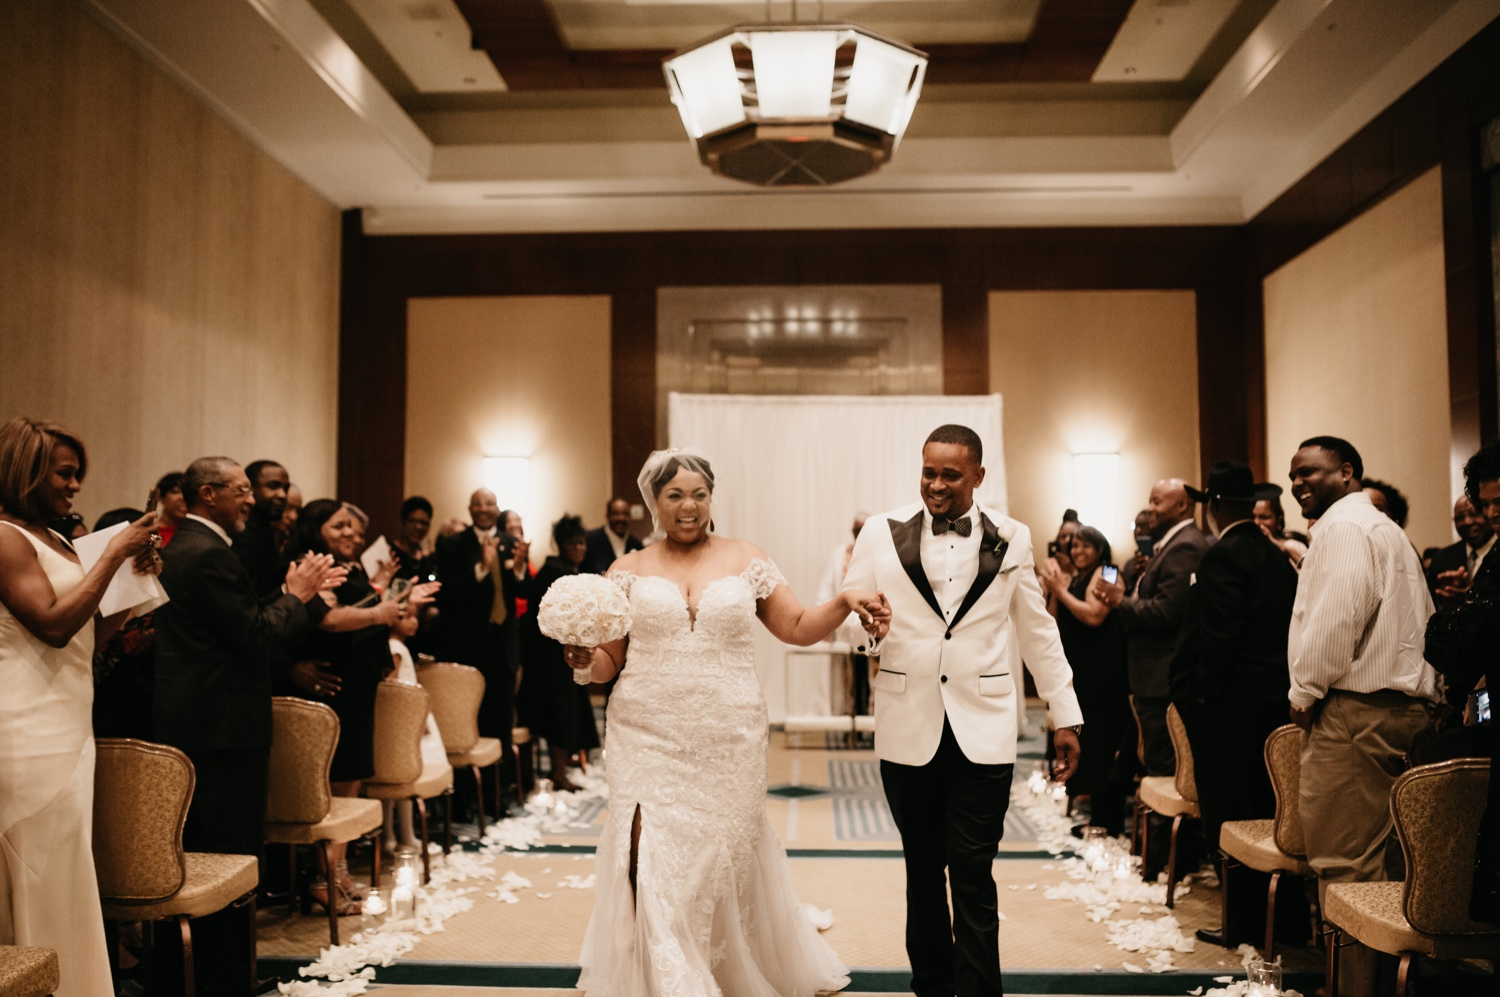 40_Ritz-carlton-wedding_charlotteNC_charlotteweddingphotographer.jpg